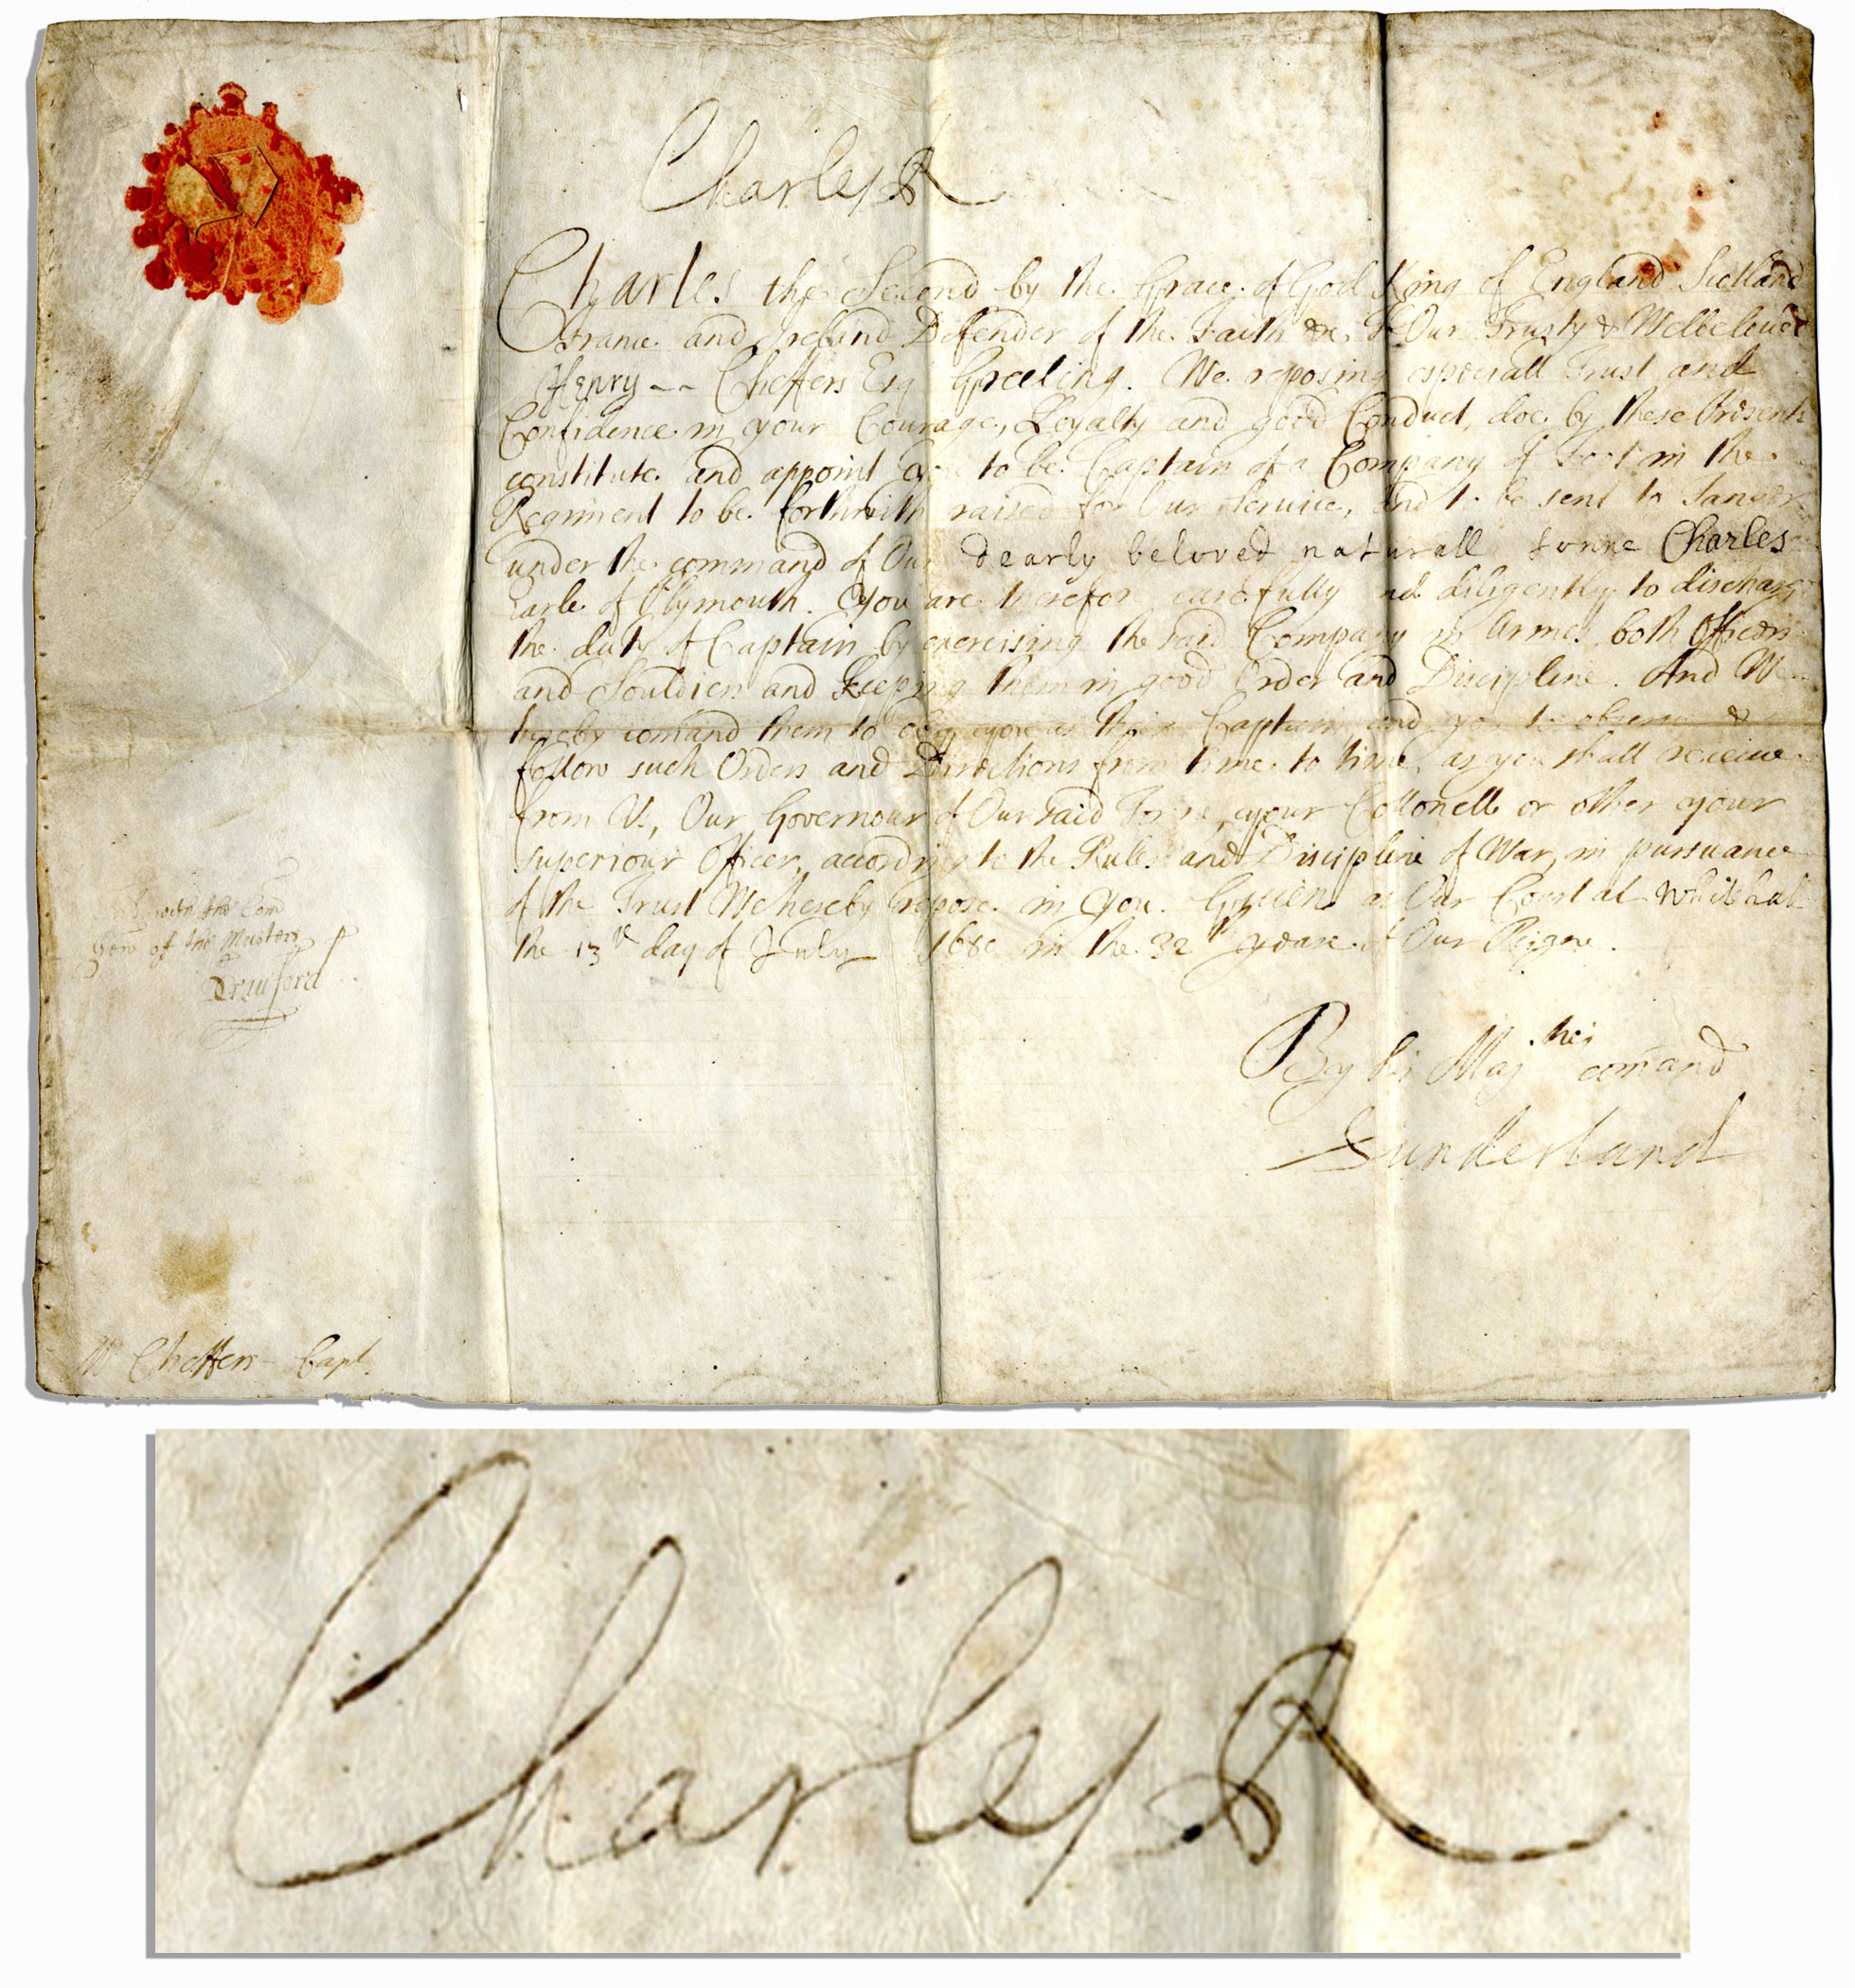 Auction Your King Charles II Autograph At Nate D Sanders